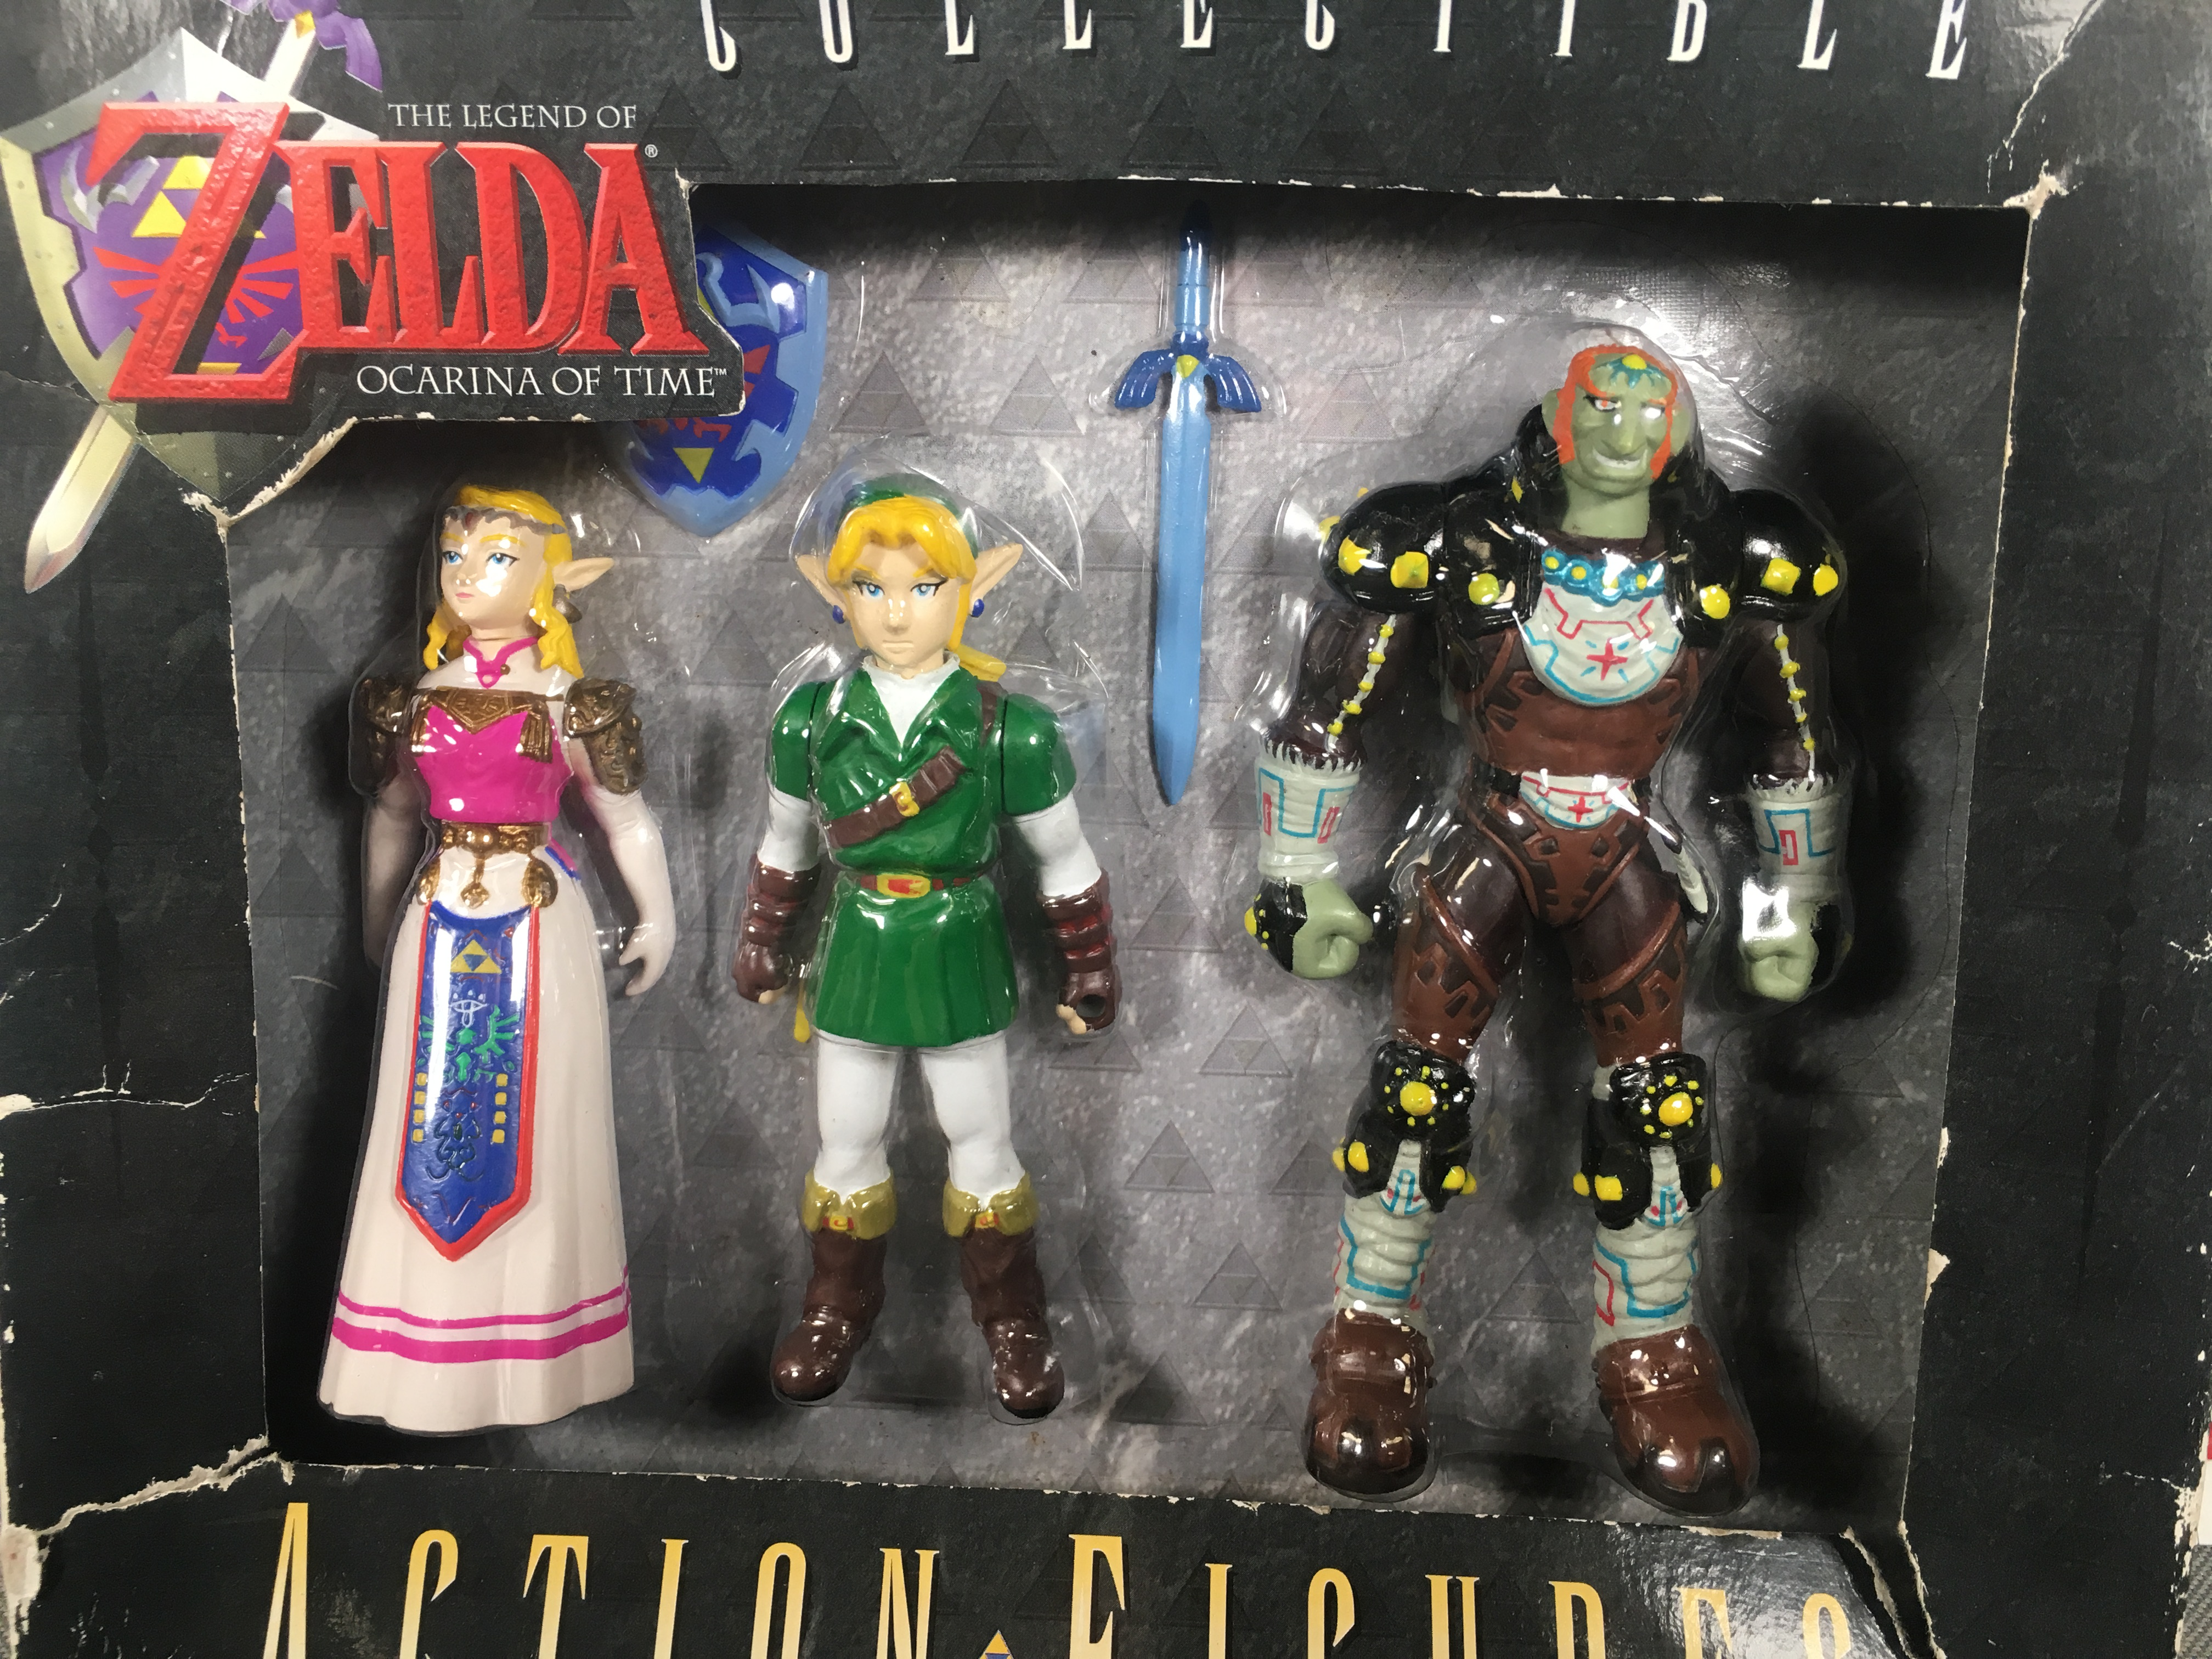 Collectible Figure Box Set (Ganondorf, Link, Zelda)